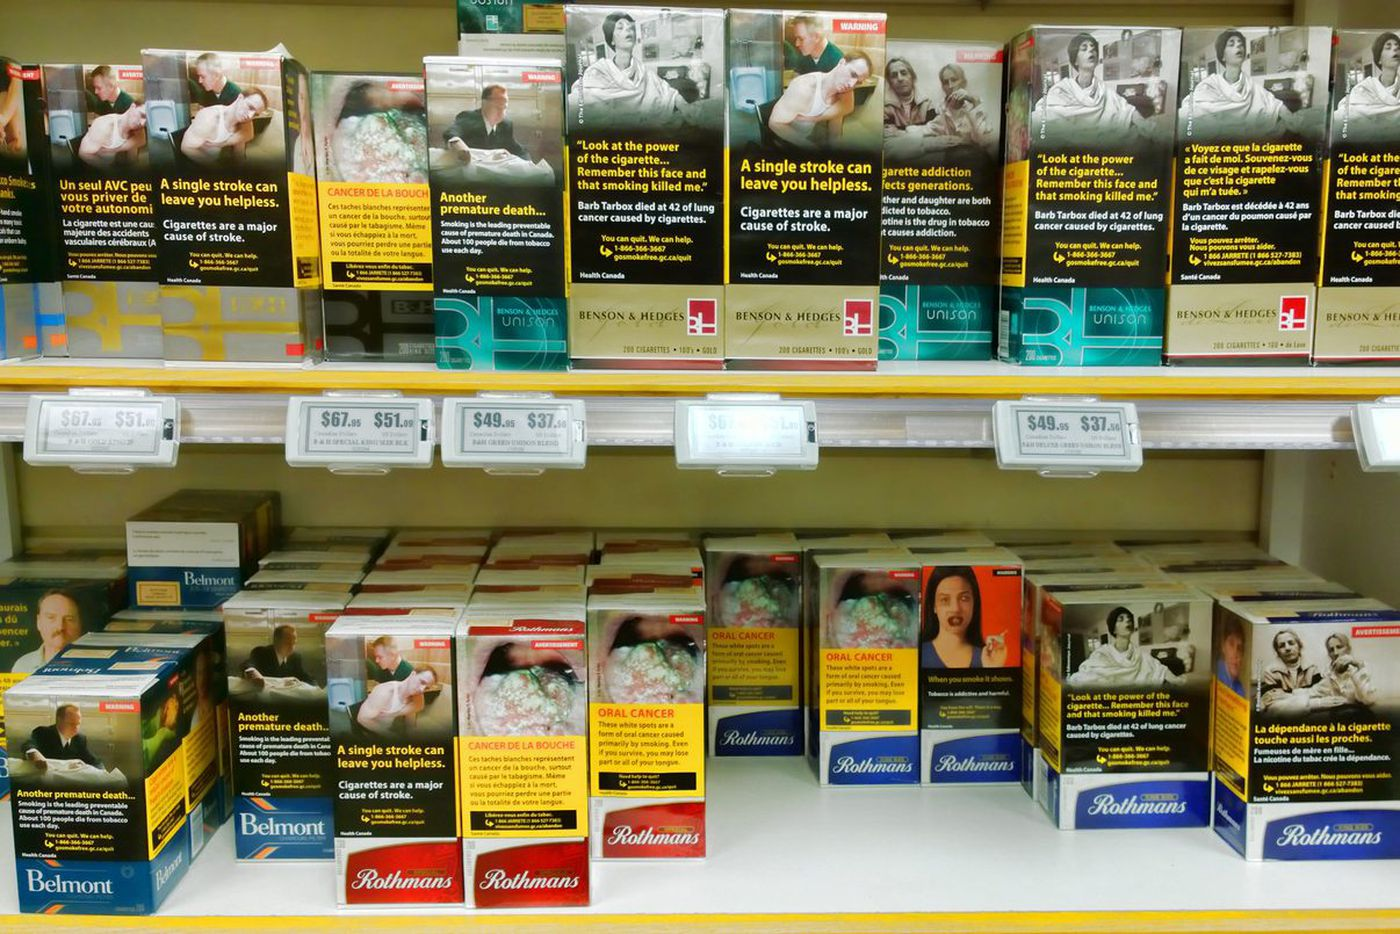 To get smokers to quit, cigarette warning labels with diseased body parts are most effective, Penn study finds